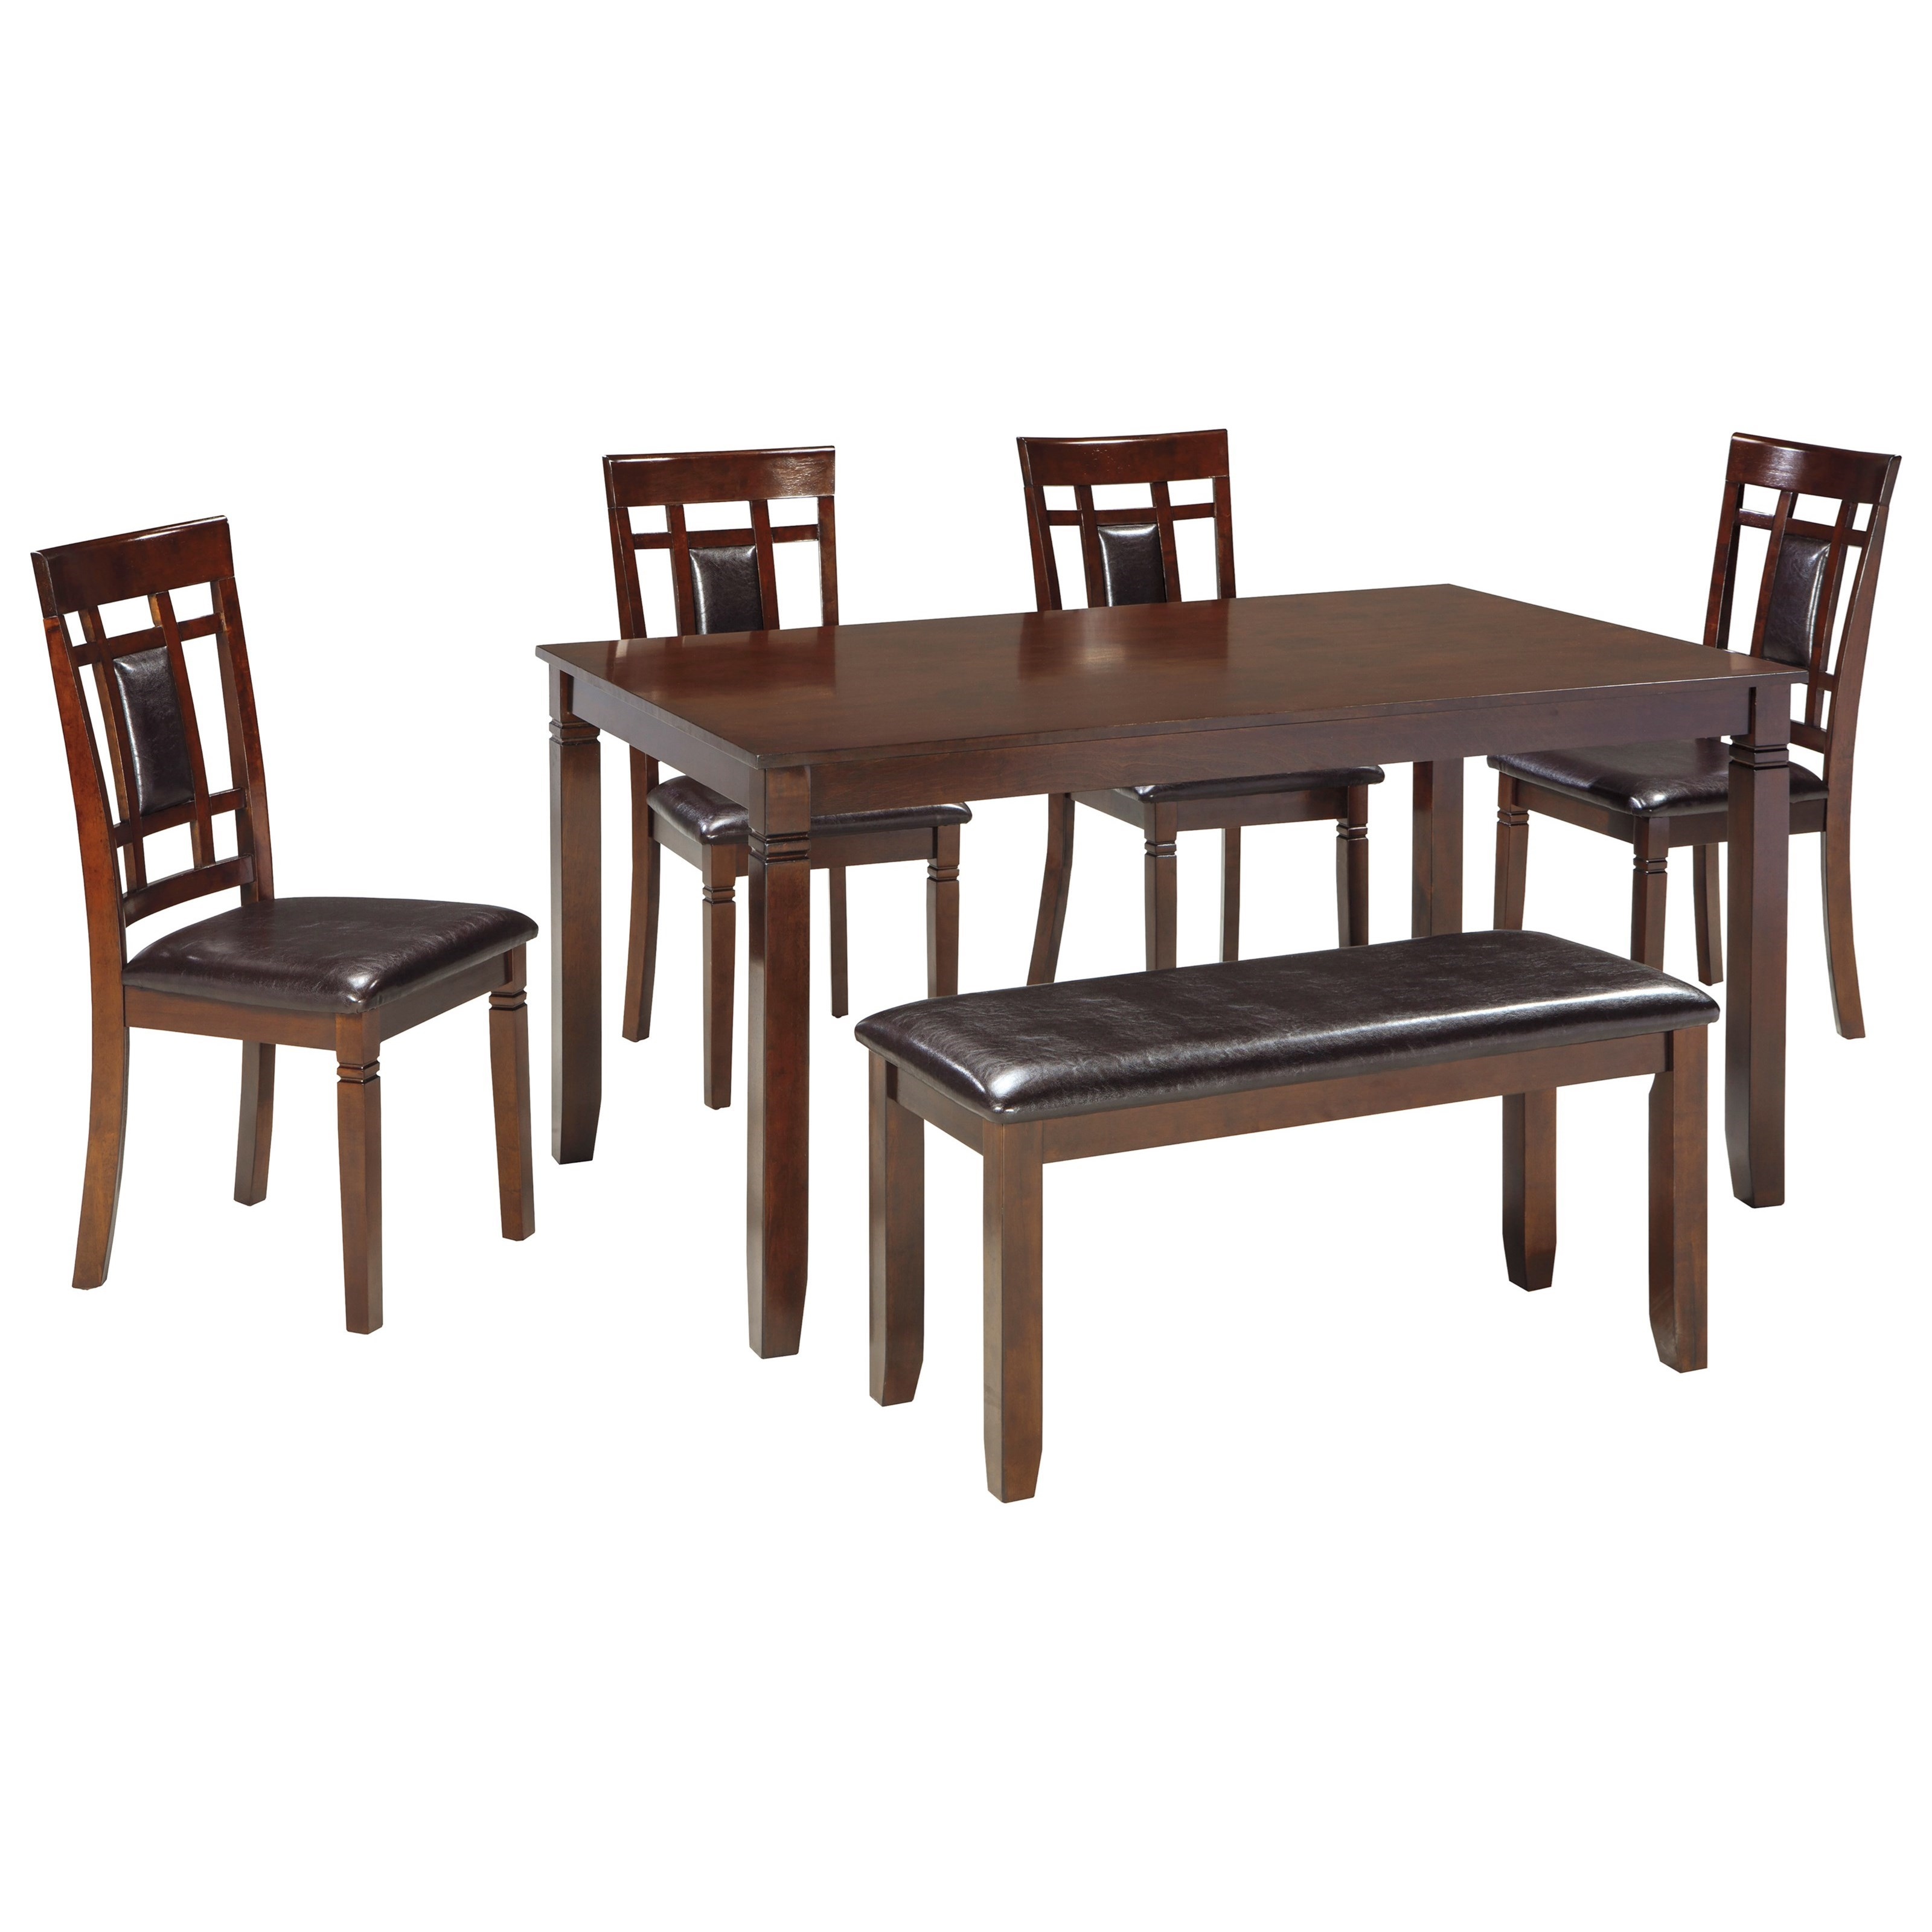 Contemporary 6 piece dining room table set with bench by Contemporary dining room sets with benches